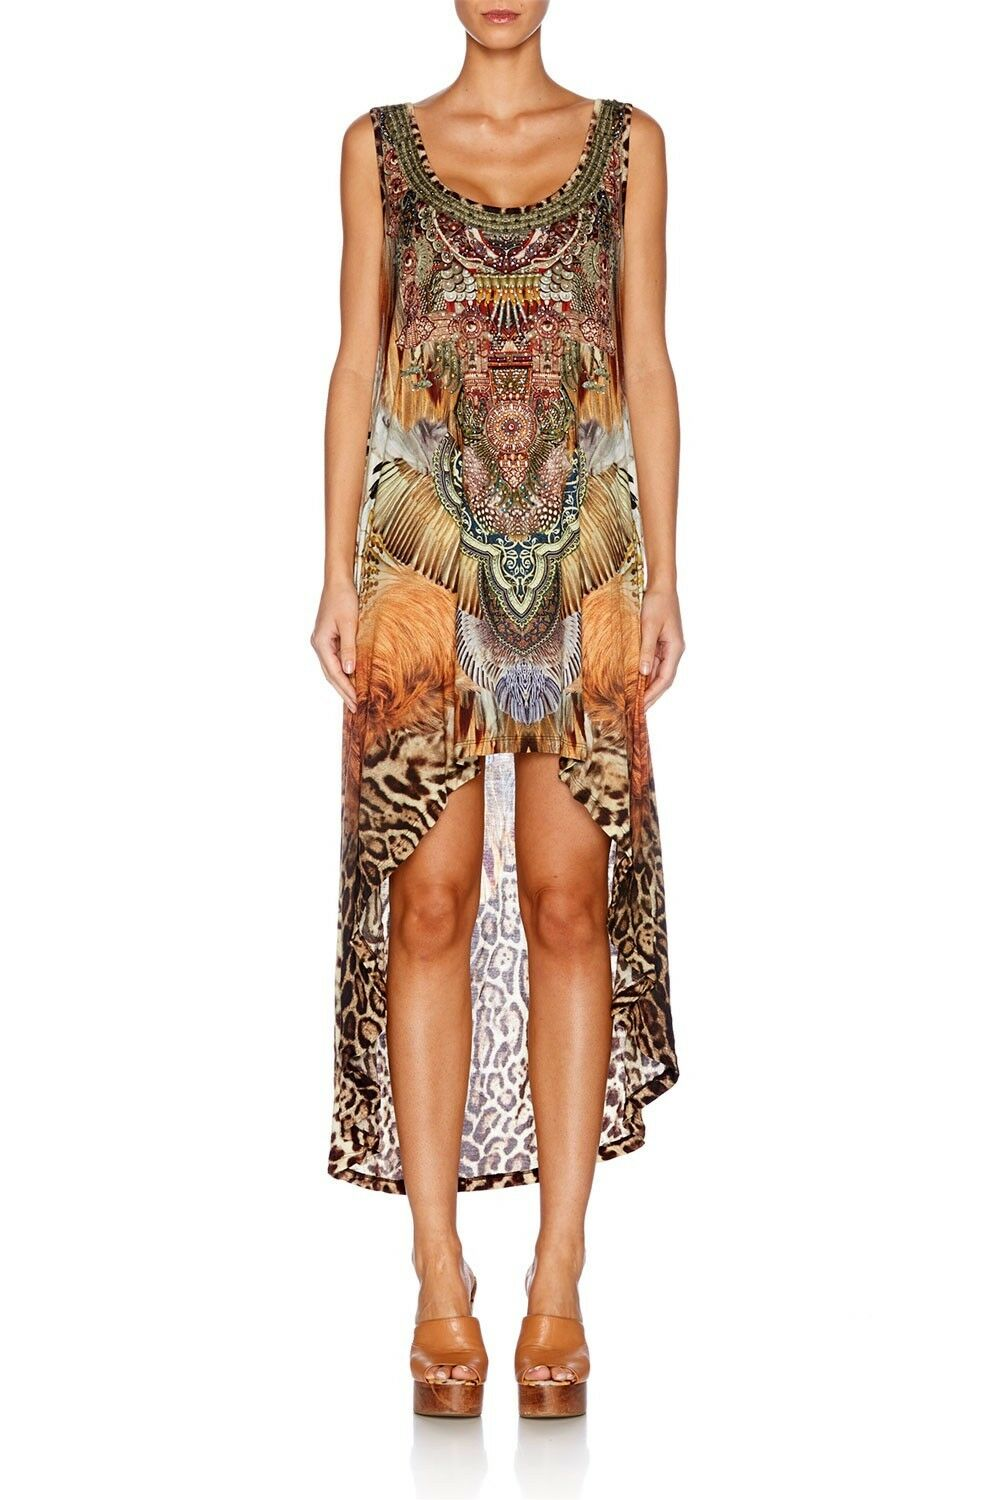 new CAMILLA FRANKS CRYSTALS EL SALVAJE TANK DRESS TOP KAFTAN sz 1